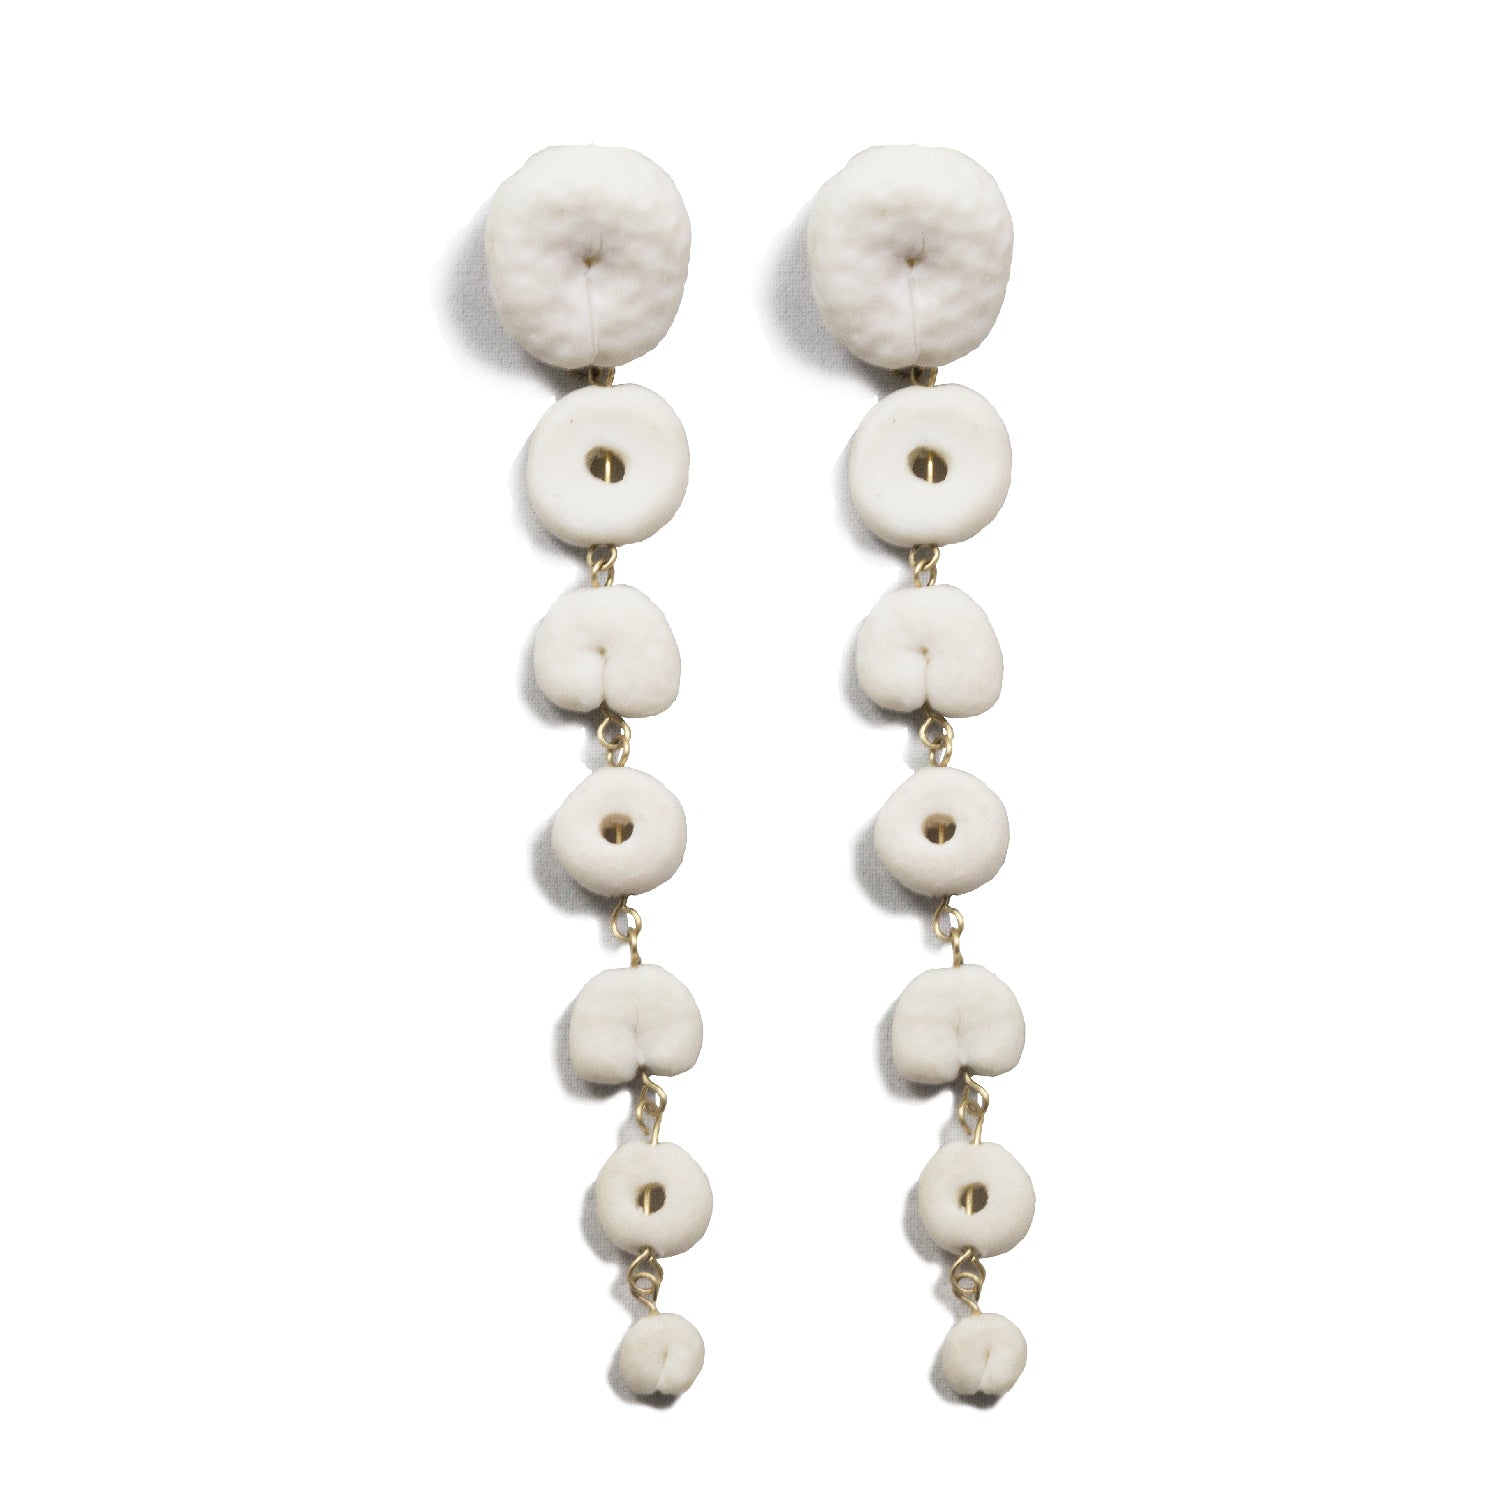 Beaded Motif Earrings